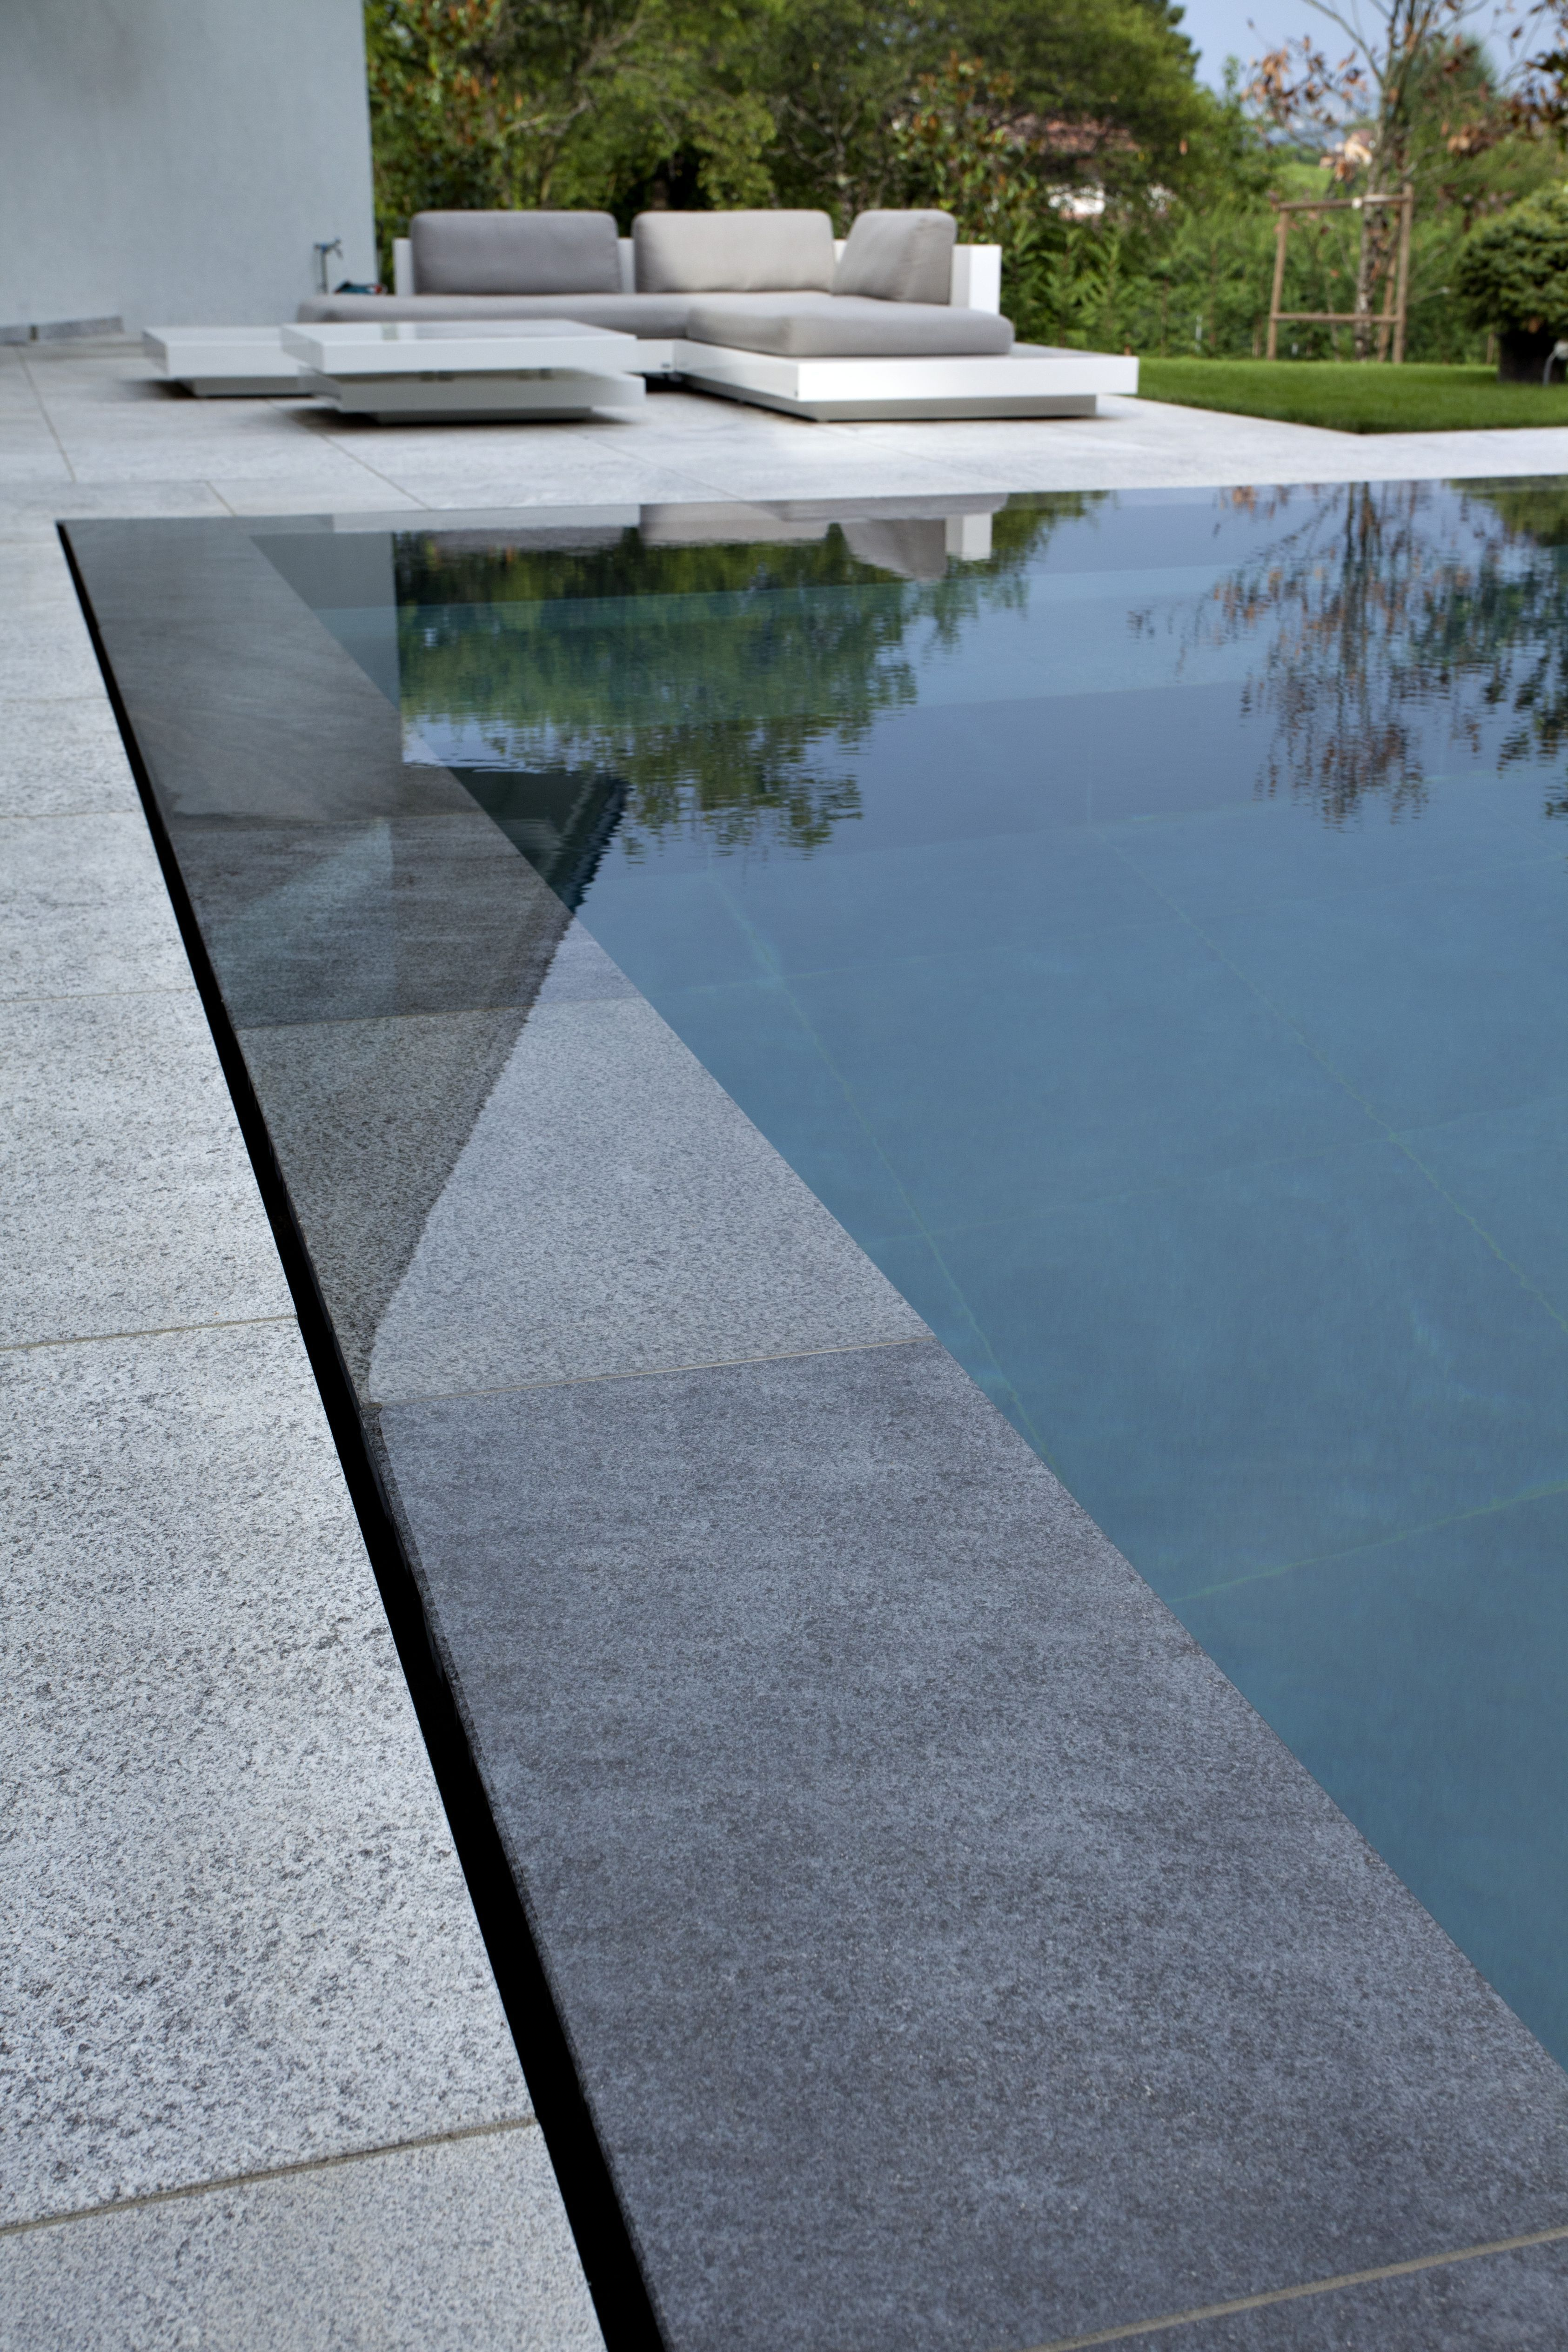 #Swimming Pool Let us help you build your #dream #pool! www.geremiapools.com